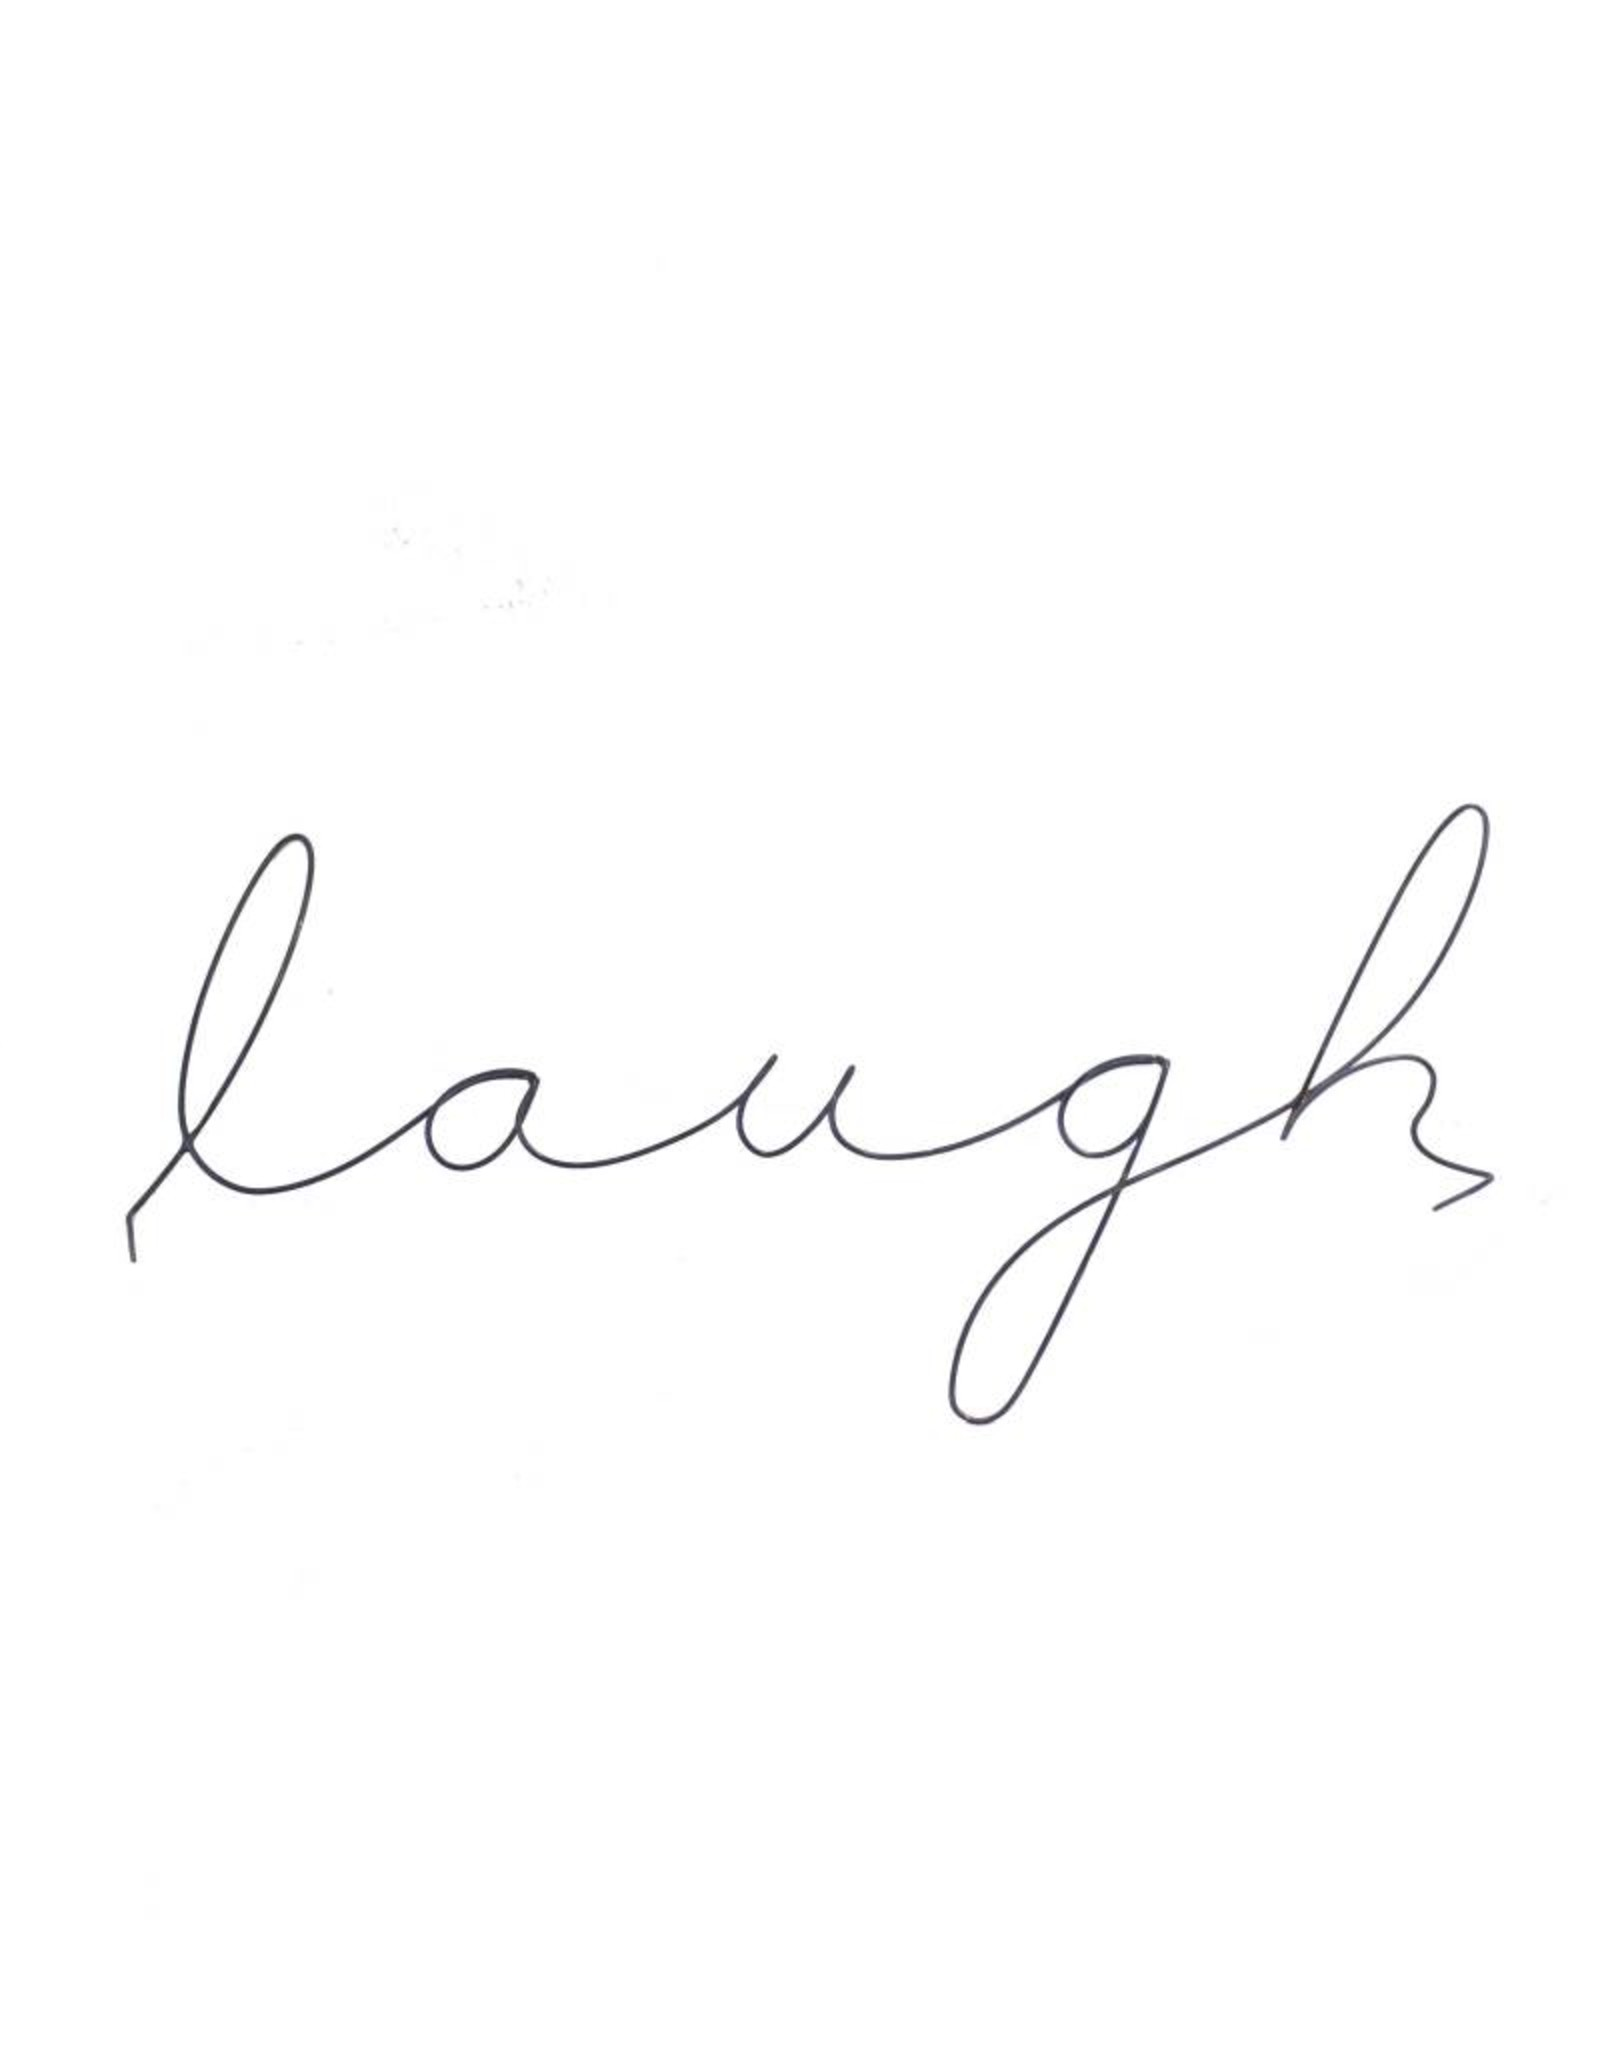 Gauge NYC 'laugh' Wire Word Poetic